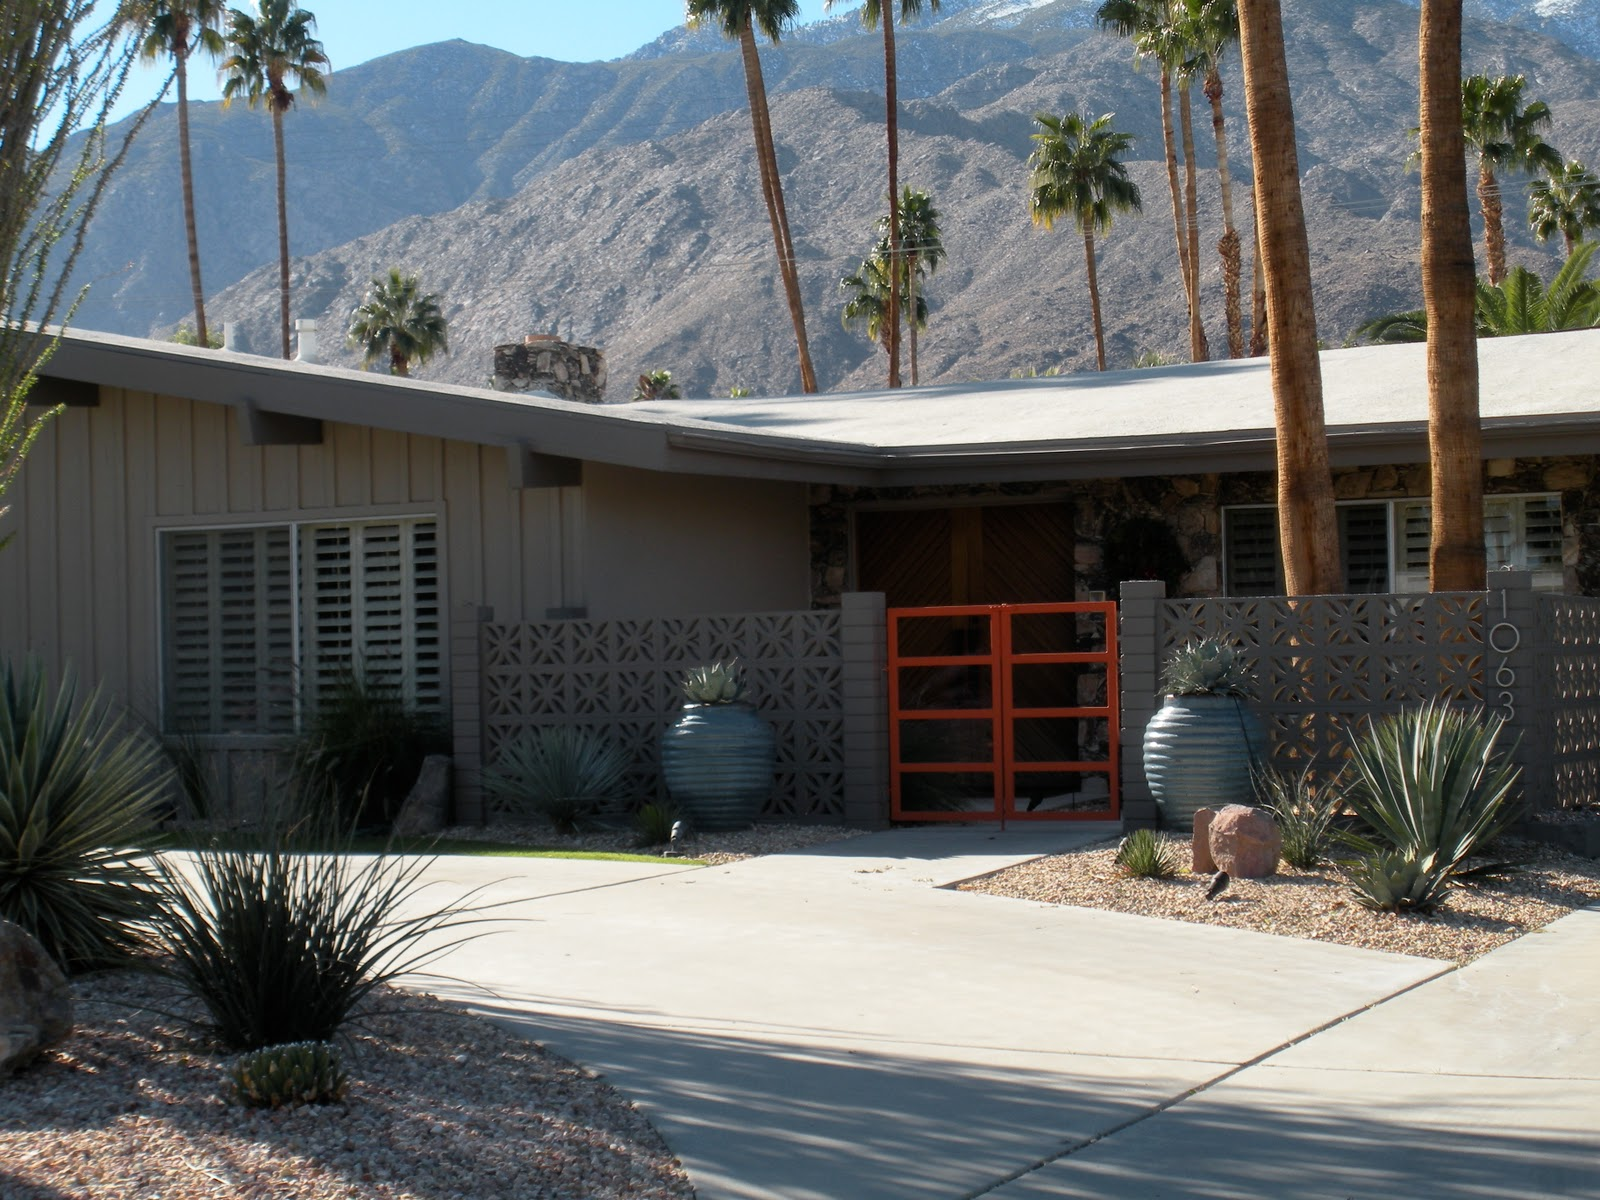 Russell hill palm springs area real estate palm springs for Buy house palm springs